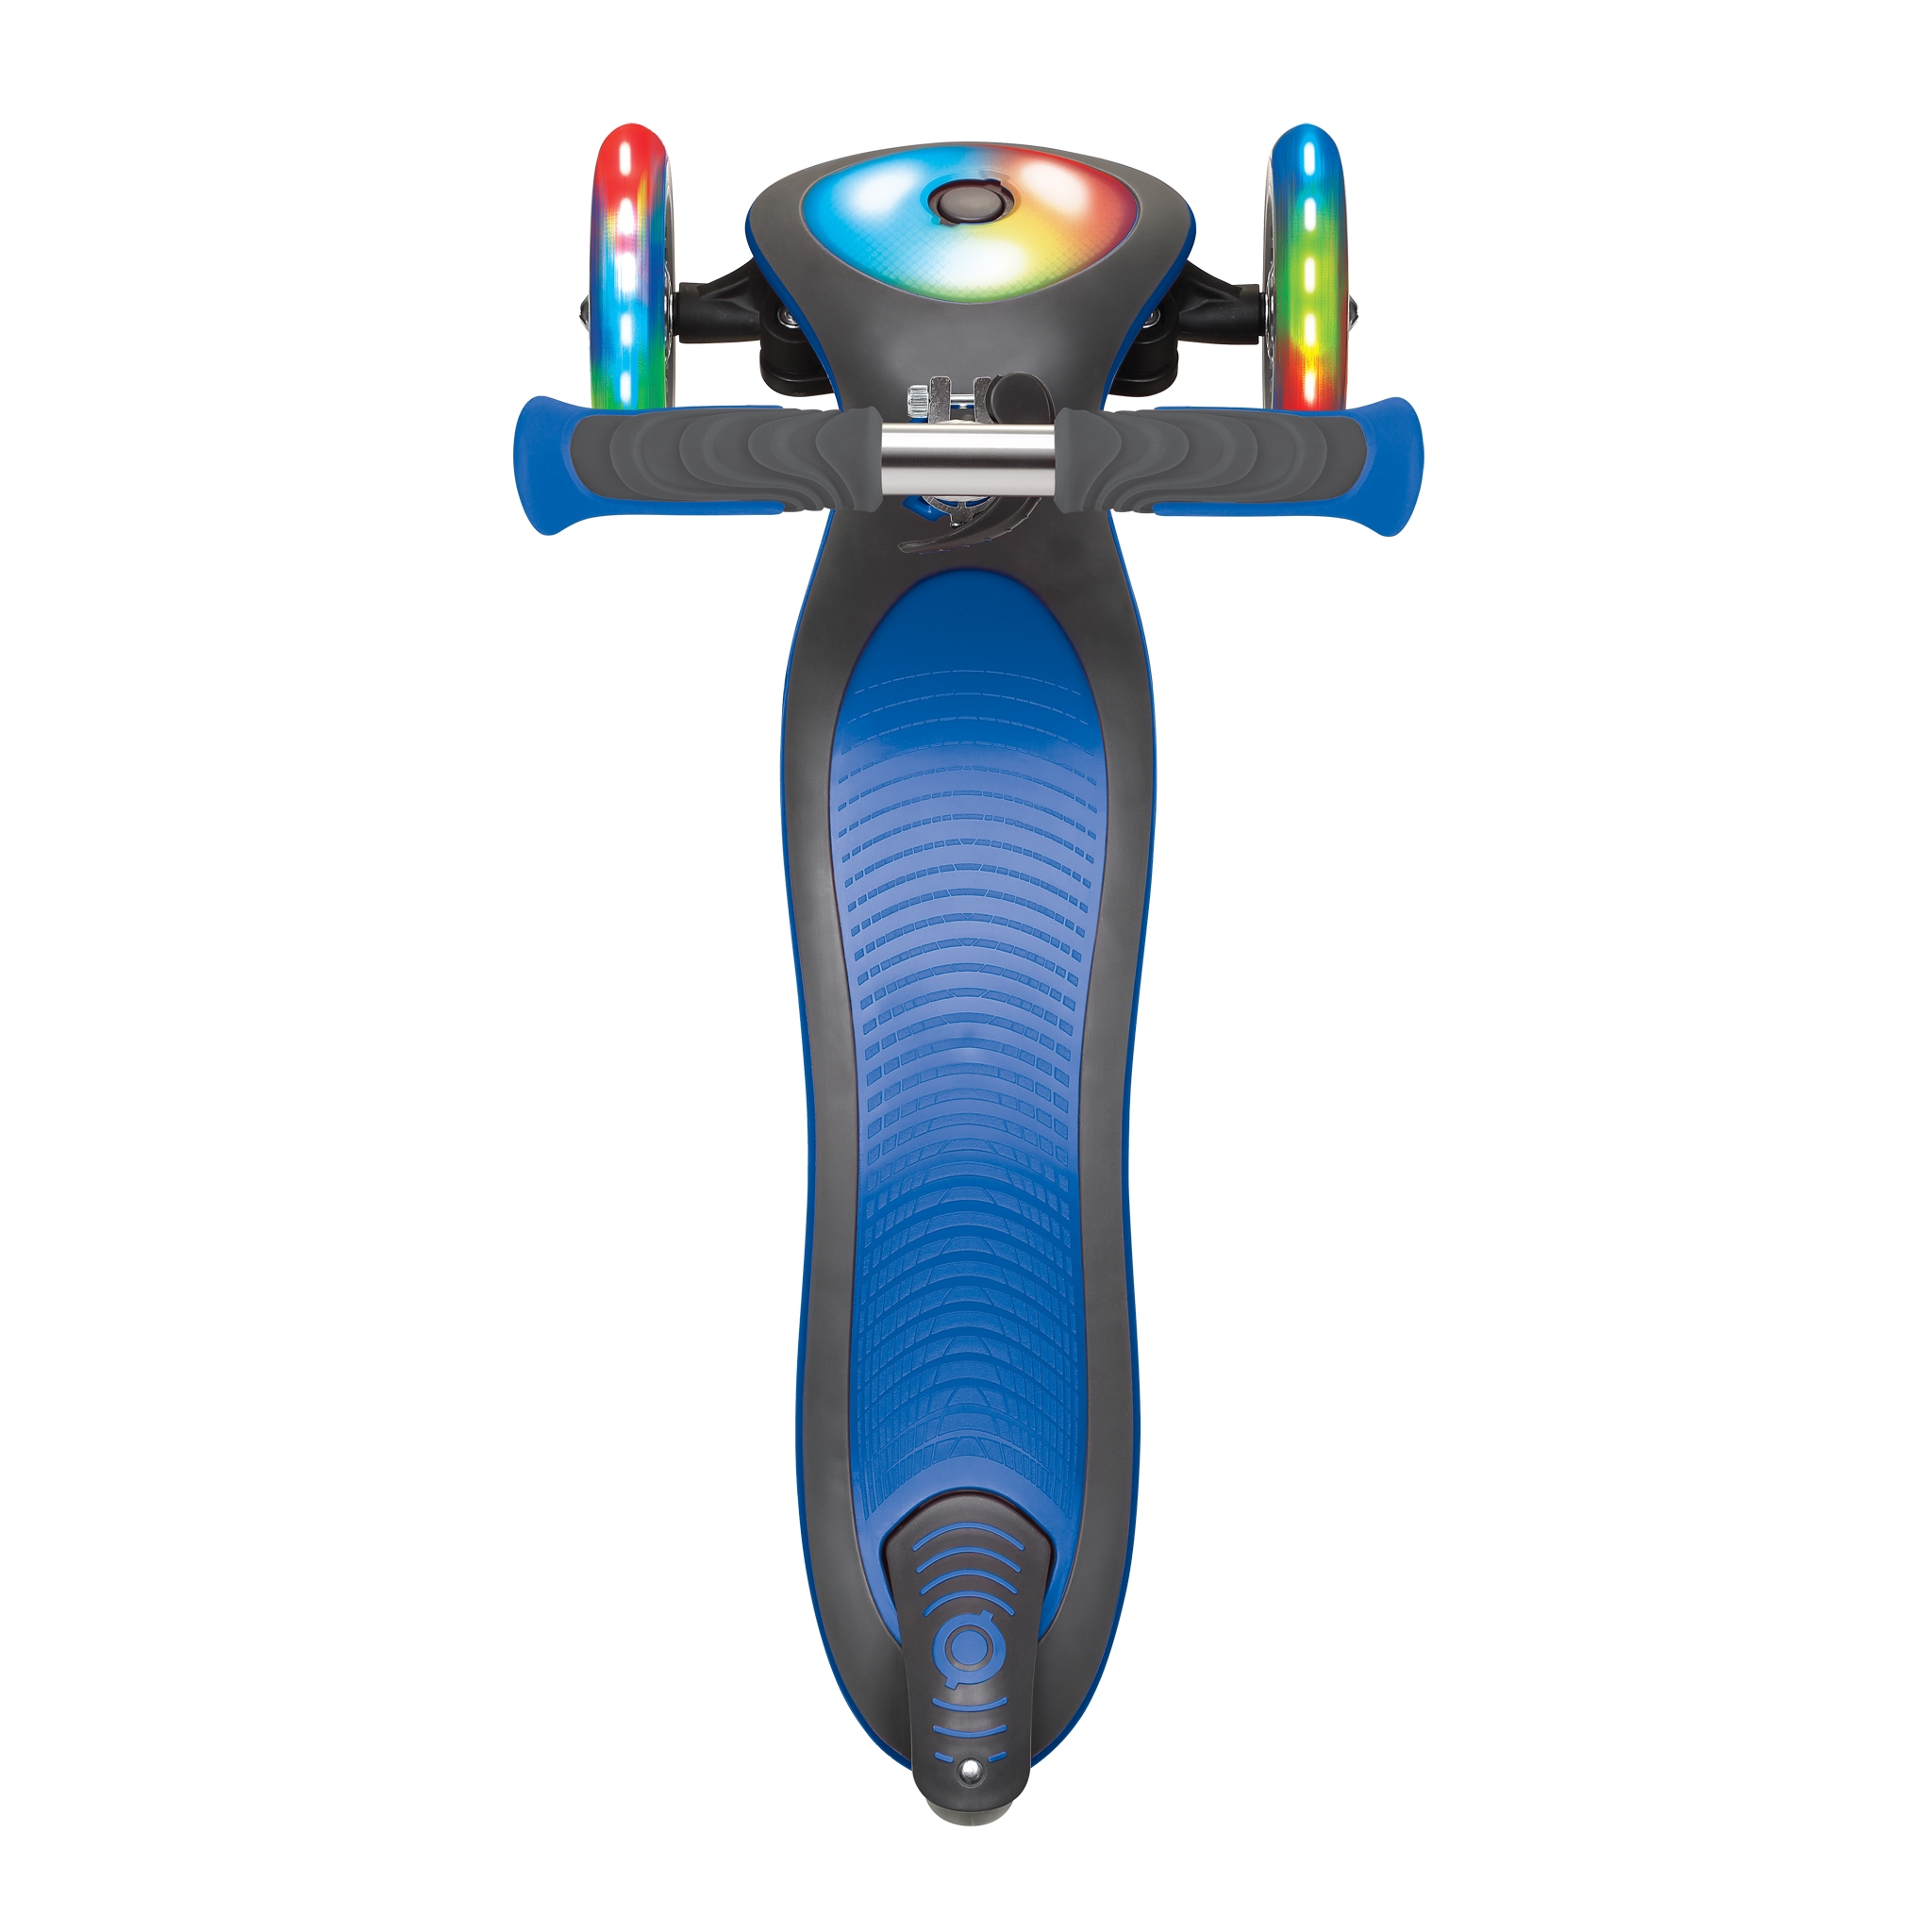 Globber-ELITE-DELUXE-FLASH-LIGHTS-3-wheel-foldable-scooter-with-extra-wide-scooter-deck-navy-blue